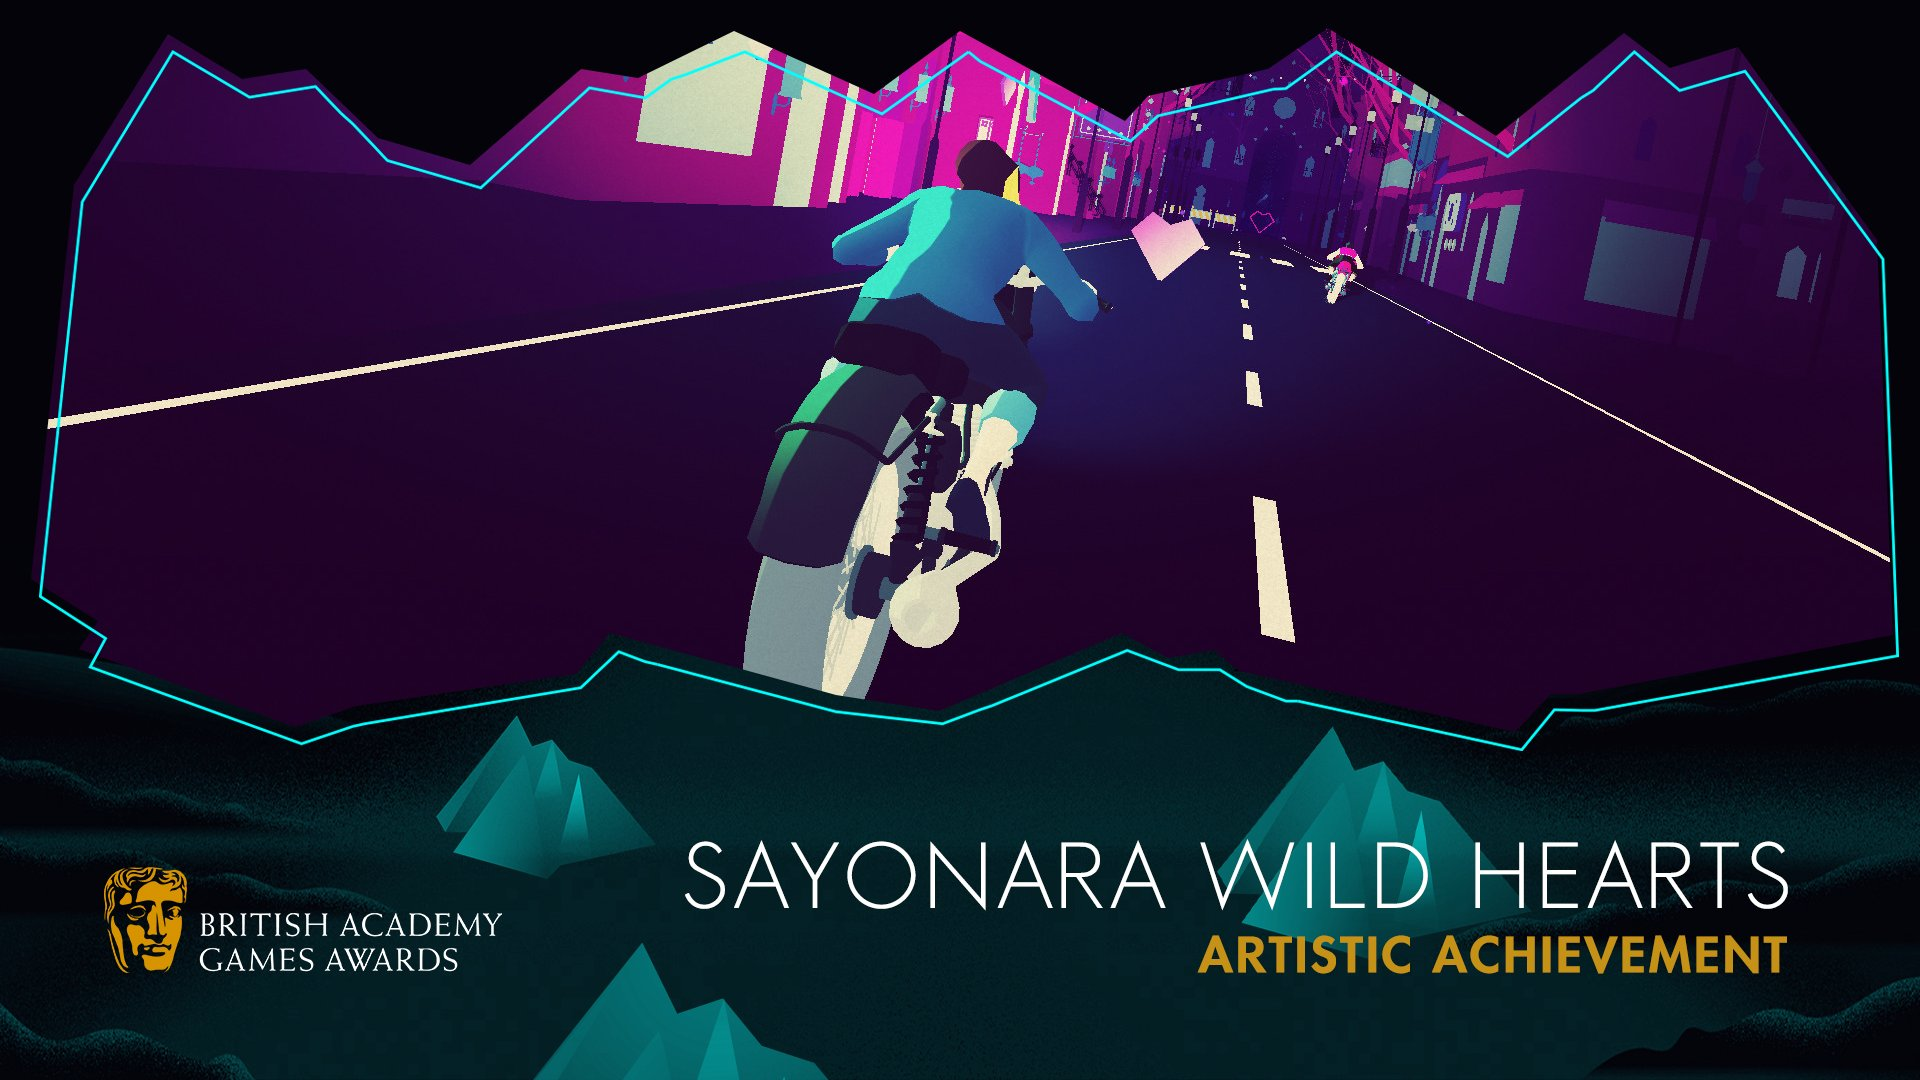 Sayonara Wilds Heart Bafta Games Awards 2020